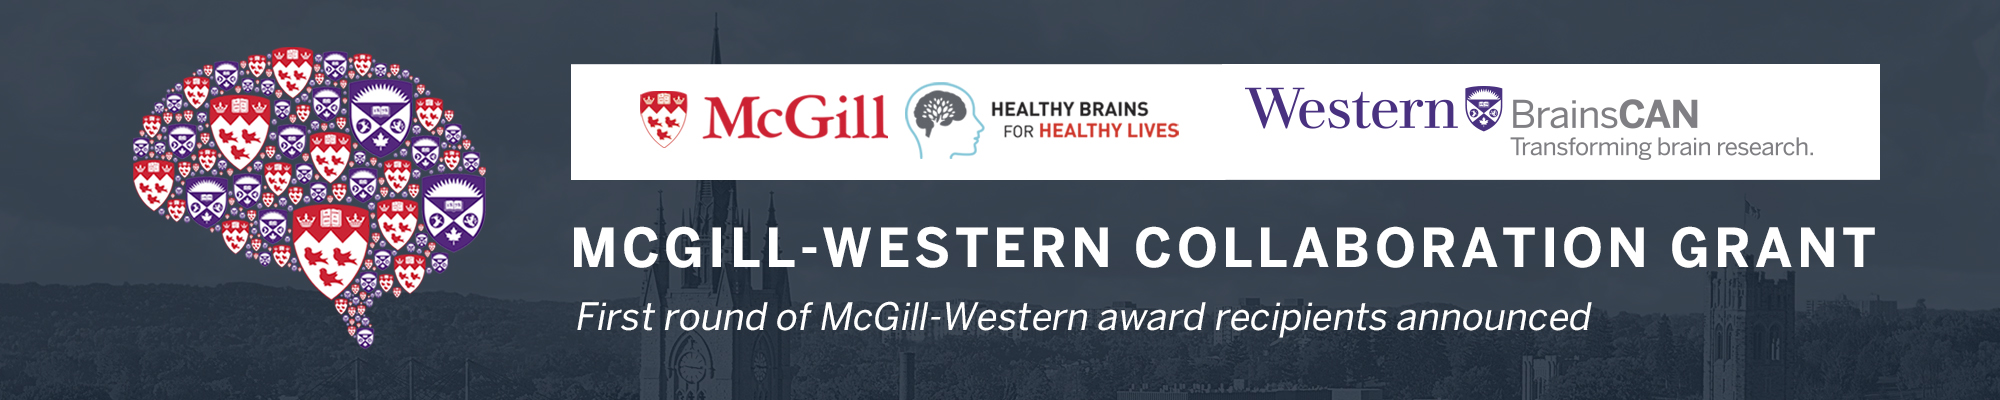 McGill-Western Collaboration Grant Banner